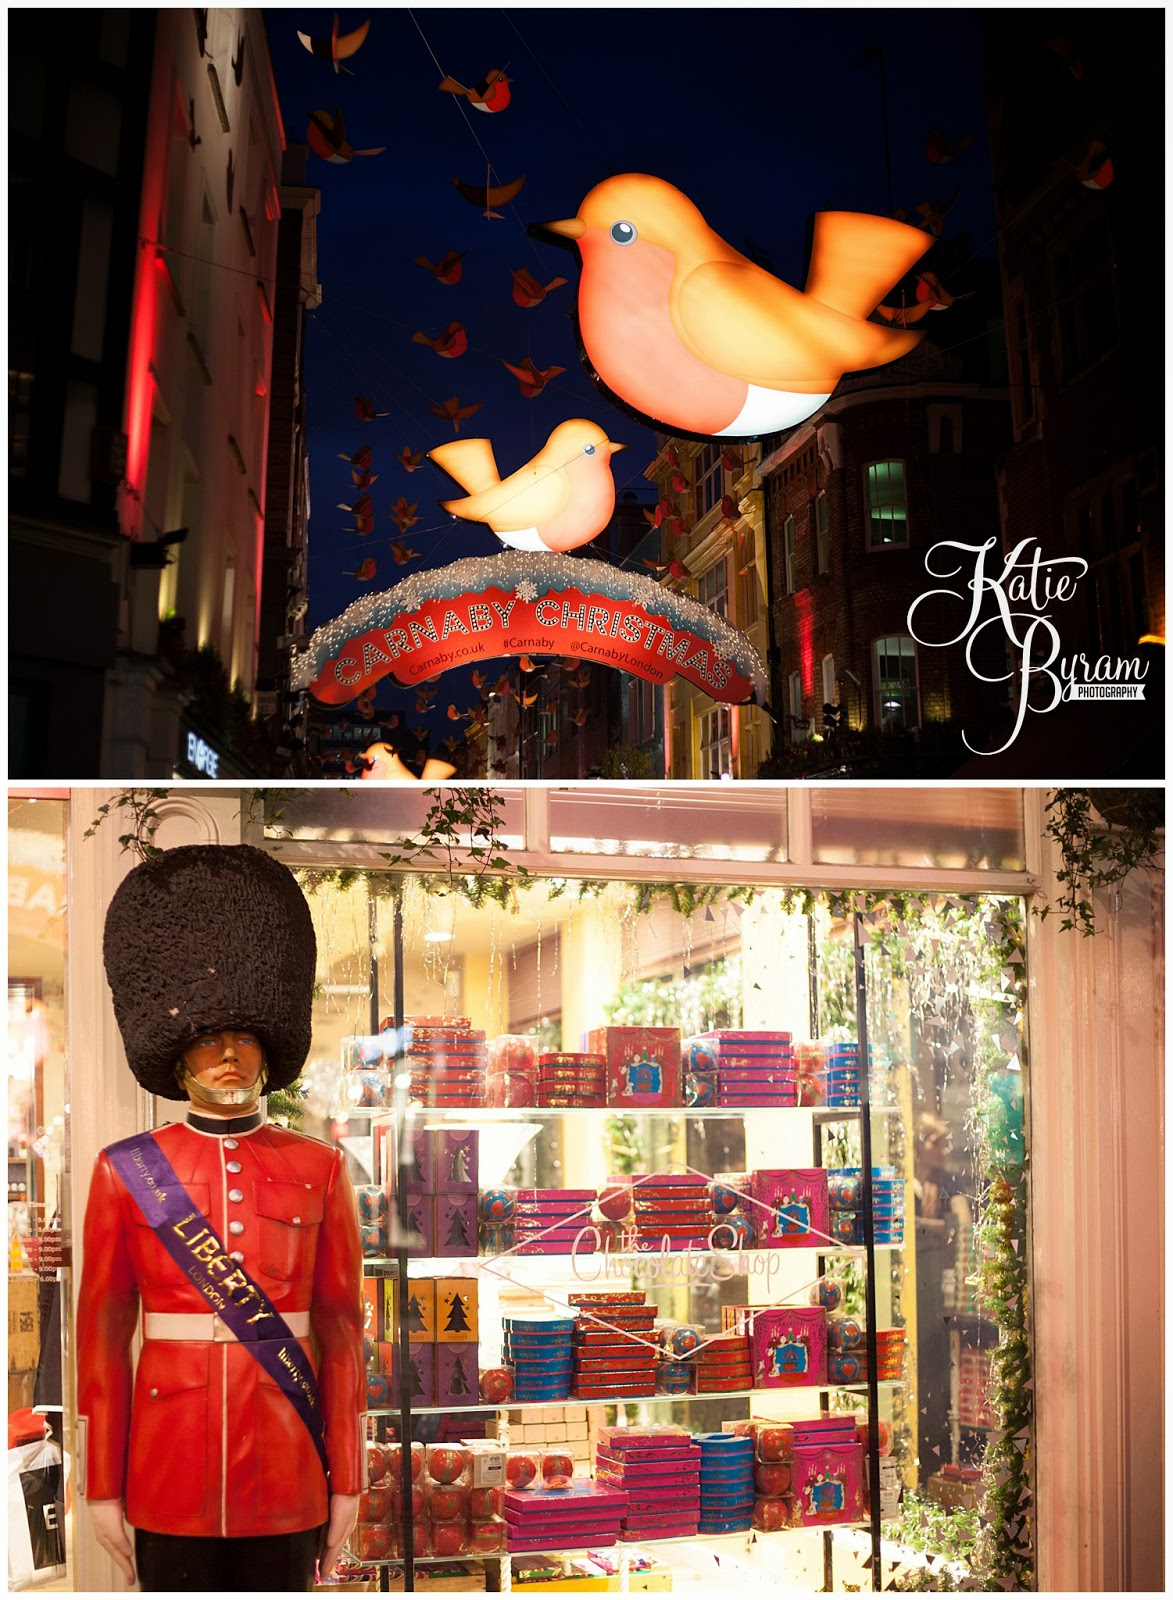 carnaby street, liberty of london, london photographer, quirky wedding photography london, harry potter land, harry potter studio tour, katie byram photography, making of harry potter, warner brothers studio, winter wonderland, london engagement shoot, pre-wedding shoot london,